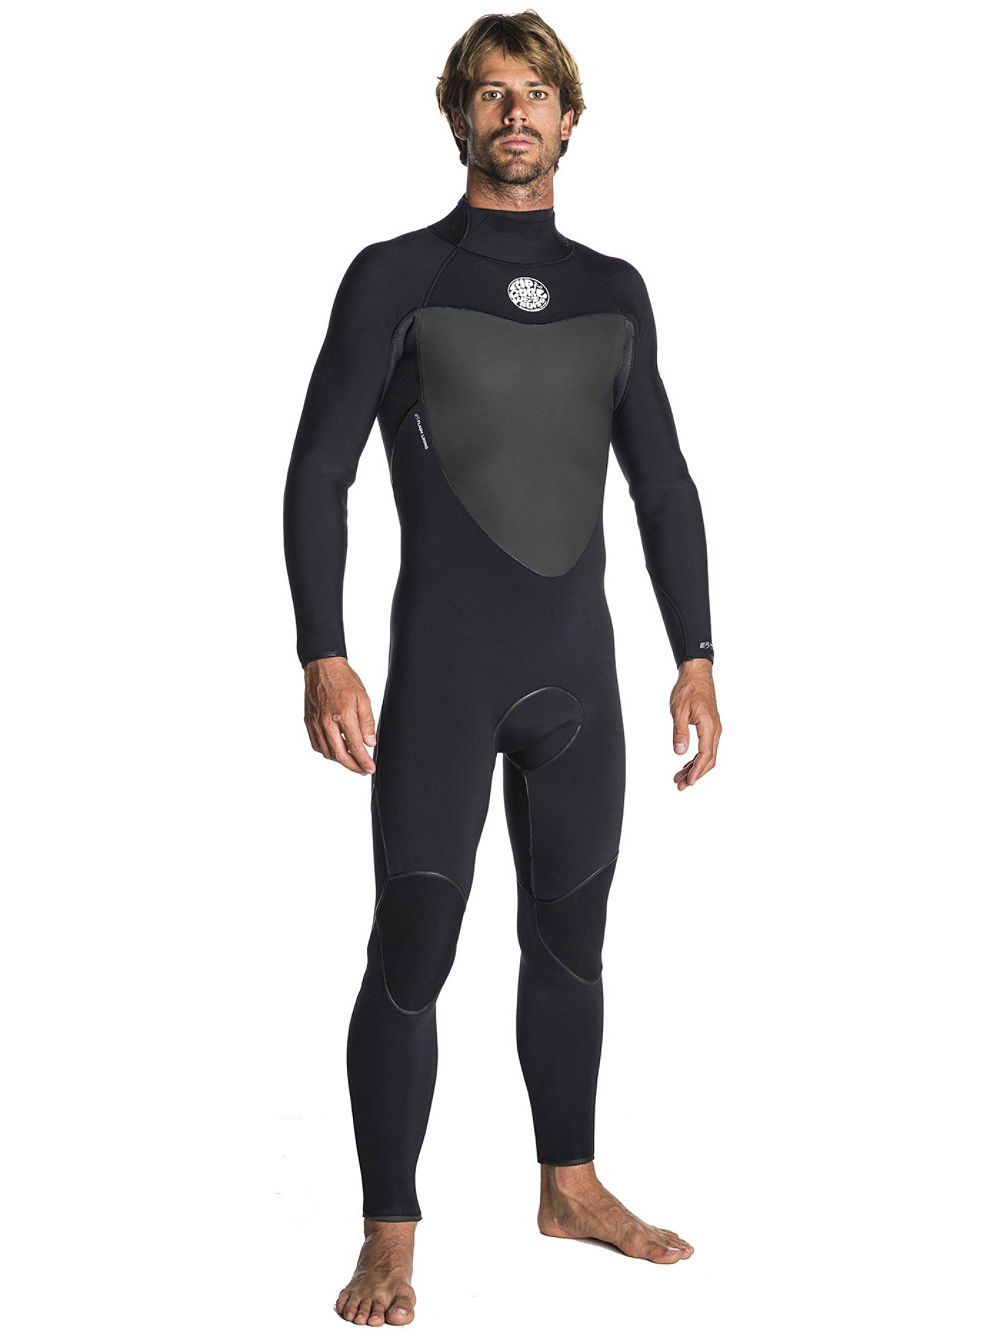 Flash Bomb 3/2Gb Back Zip Wetsuit